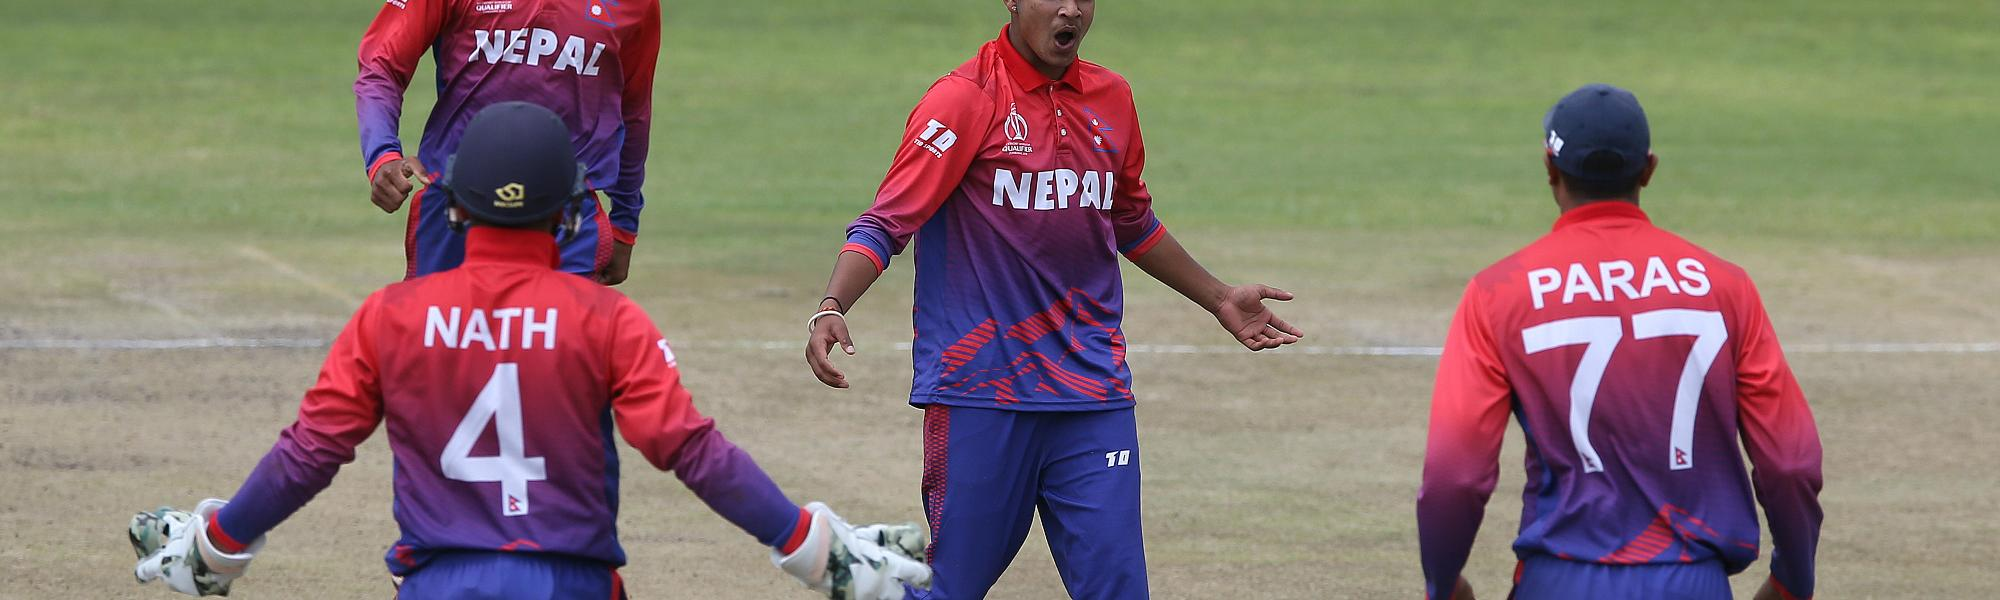 Nepal gained ODI status for the very first time after beating Papua New Guinea (PNG) by six wickets